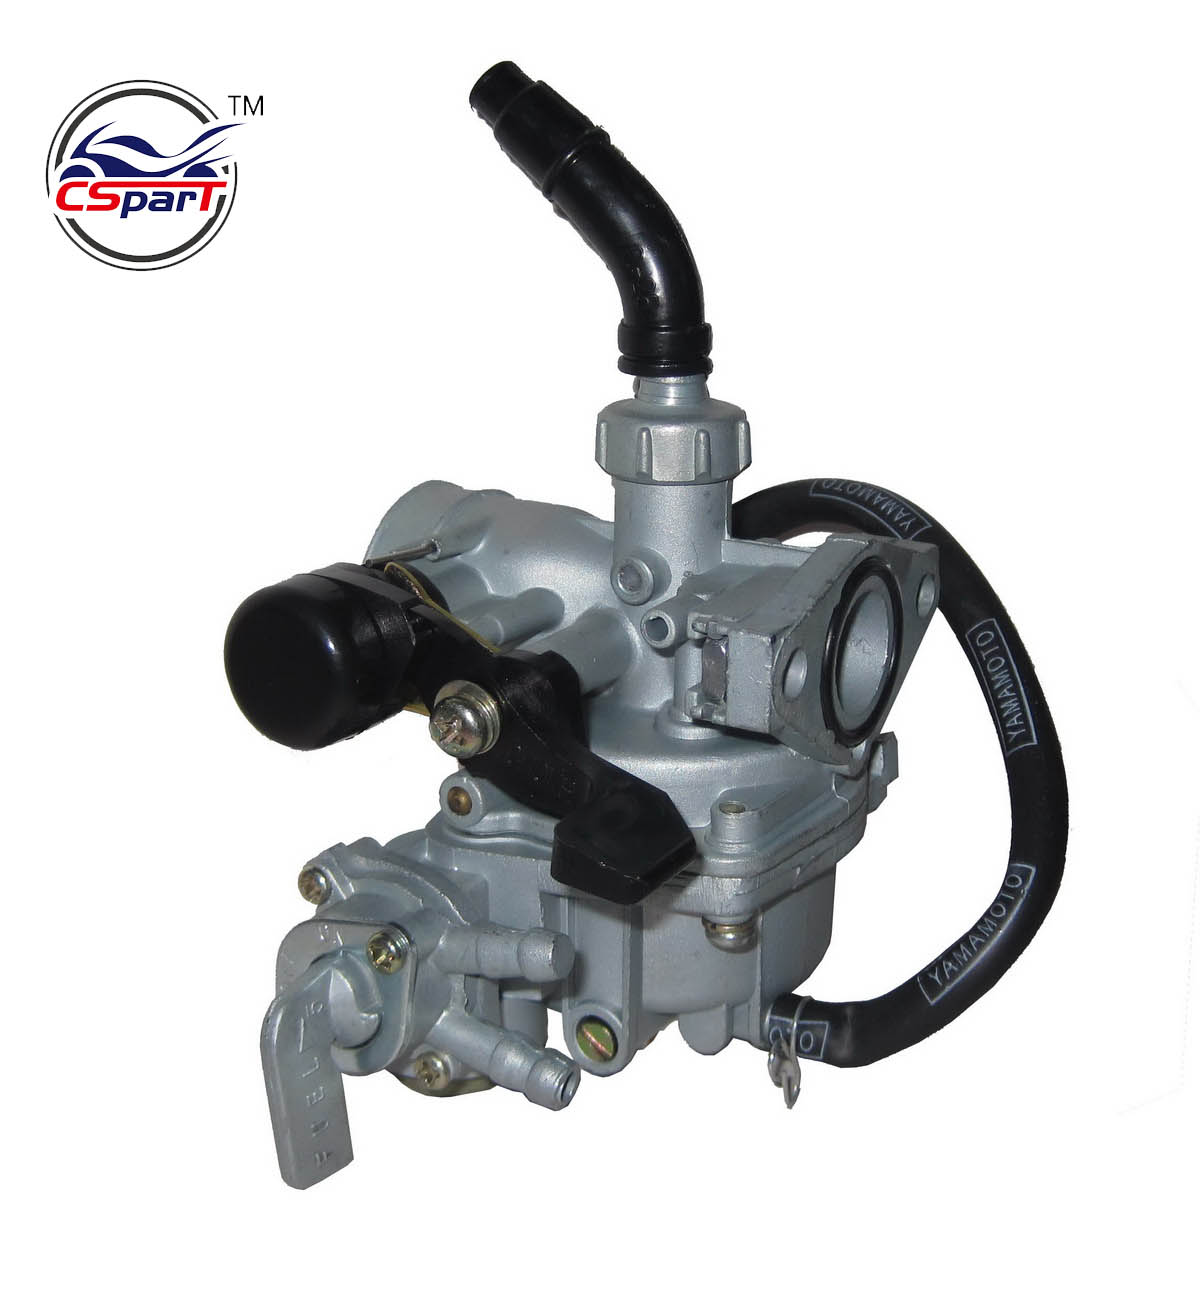 US $25 8  17mm PZ17 Carb Hand Chock Fuel Valve Carburetor For Honda TRX 70  ATC70 CT70 C70 FOURTRAX-in Carburetor from Automobiles & Motorcycles on